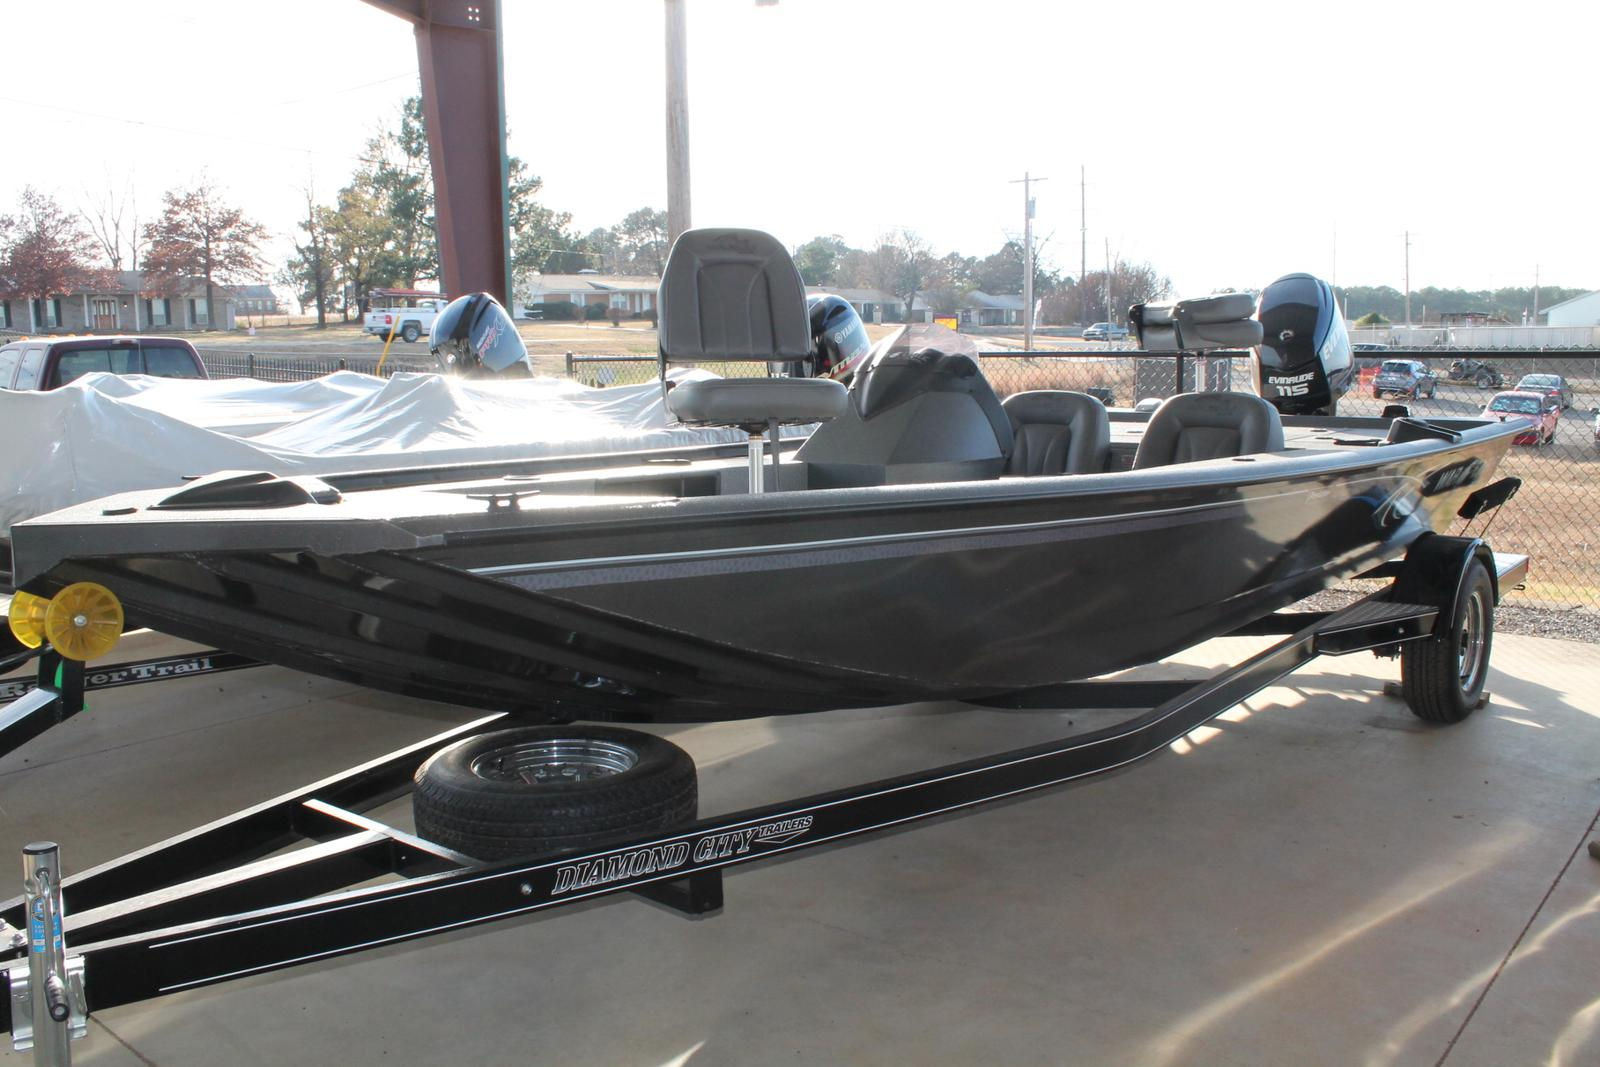 2018 War Eagle 961 Predator For Sale In Fort Smith Ar Barling Boat As Well Trailers On Trailer Wiring Img 7050